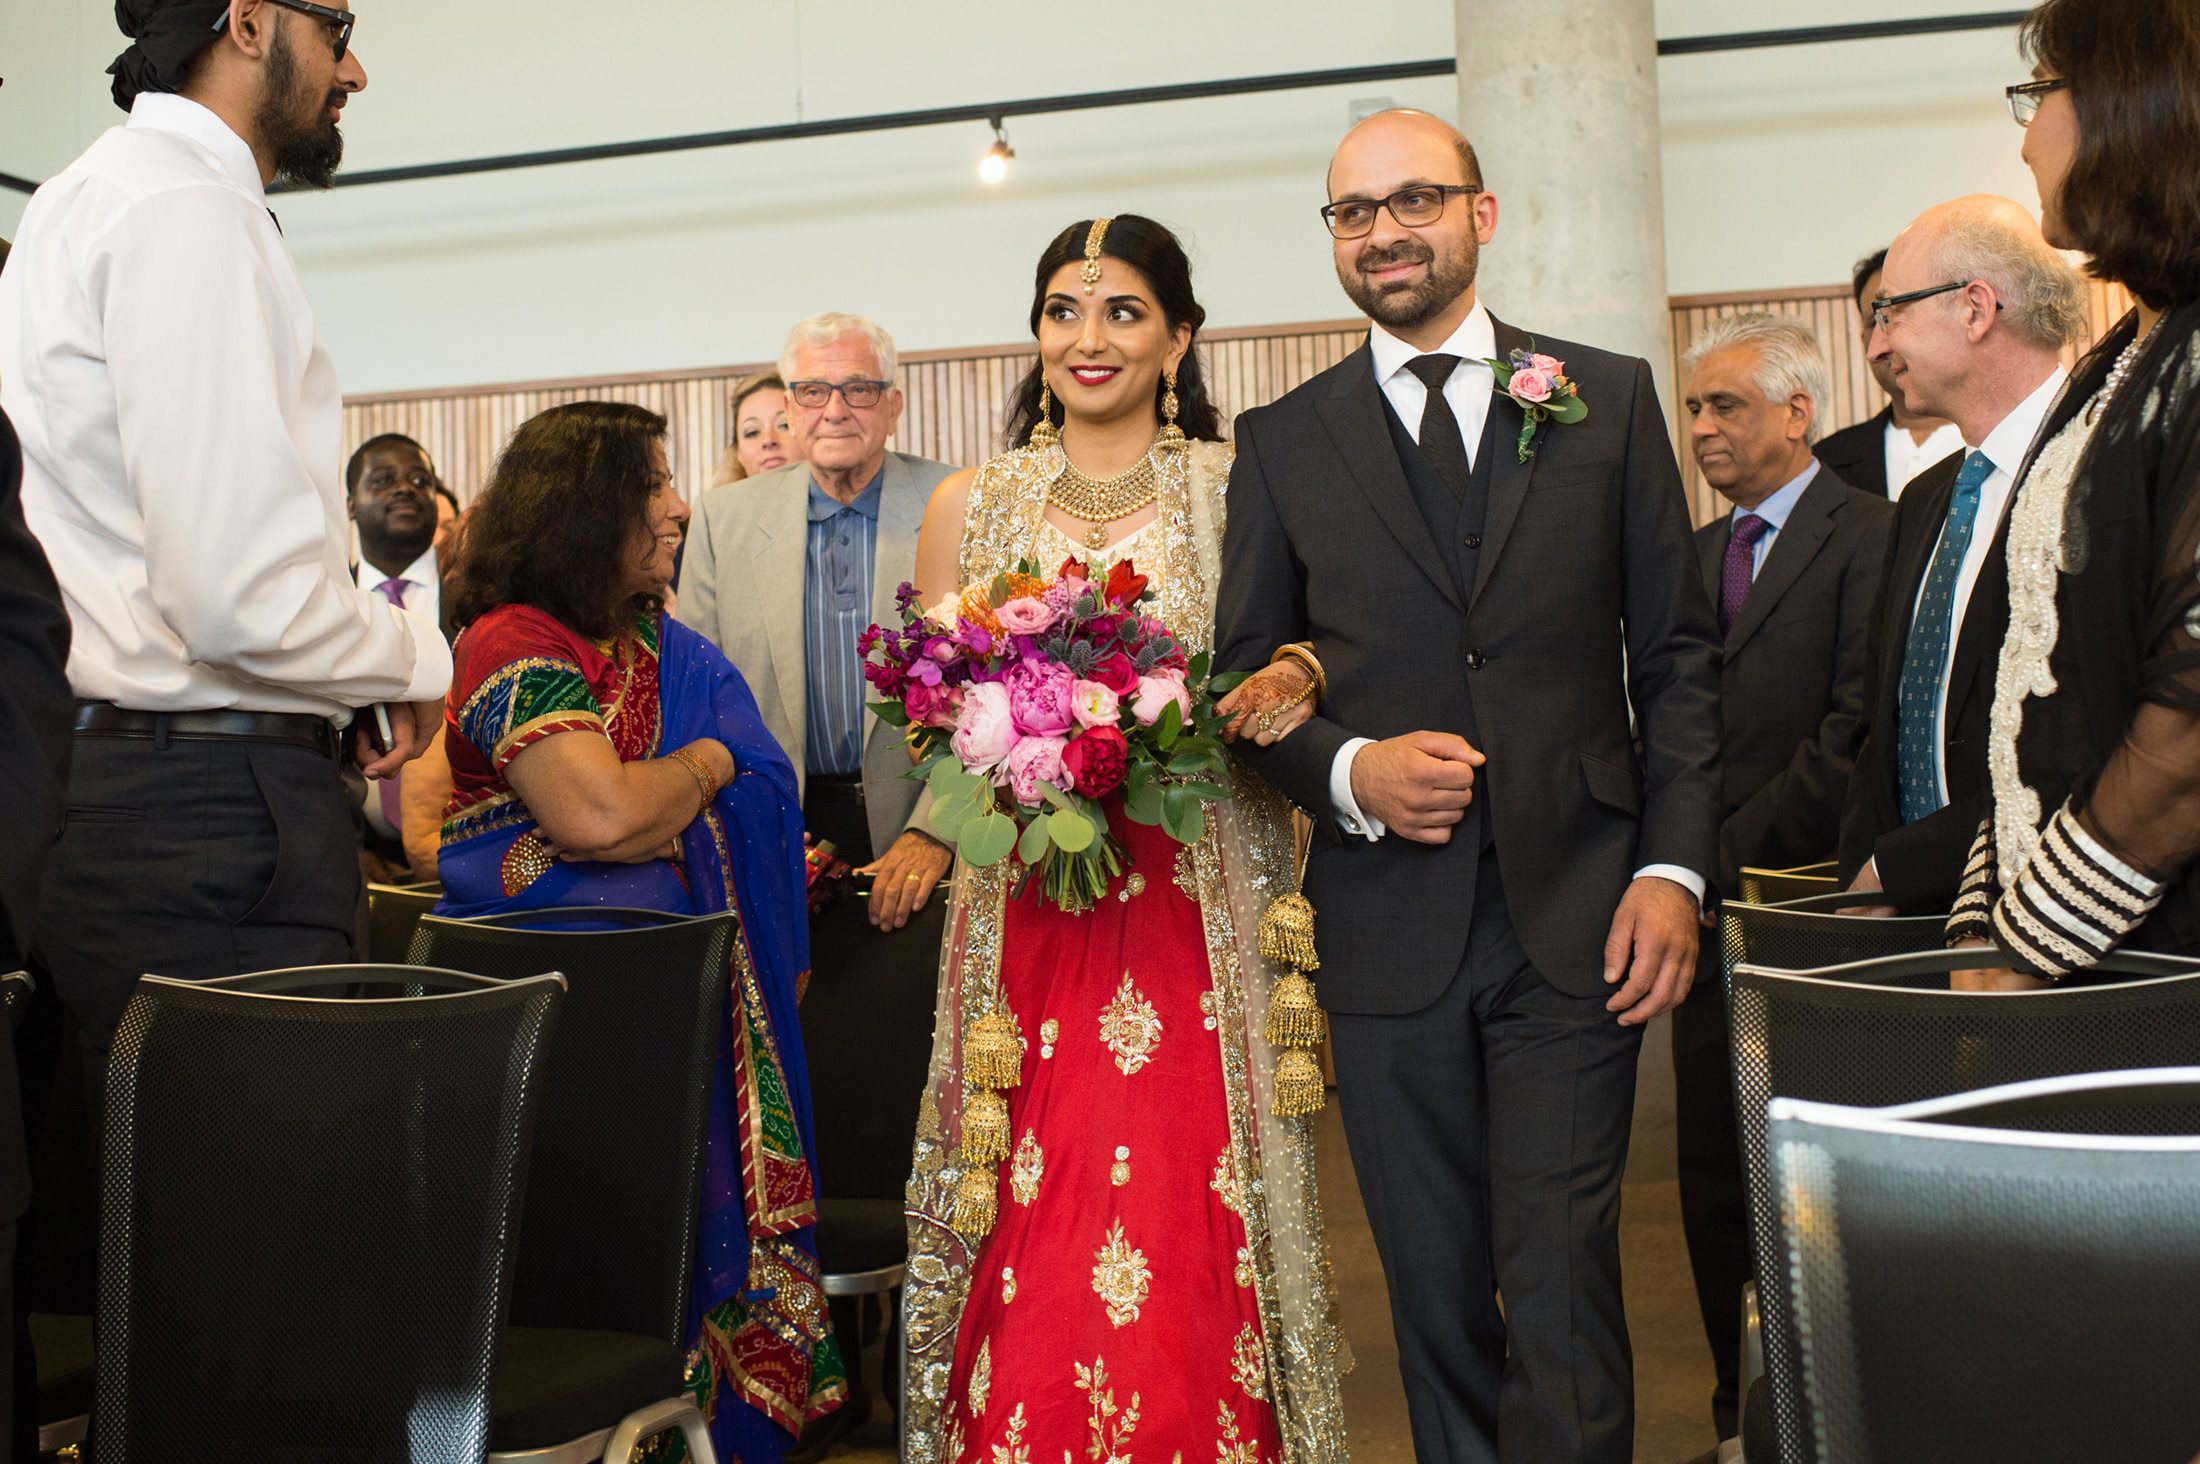 Edmonton_wedding_photographers_enjoy_center_wedding_Kiran_faisal_22.jpg